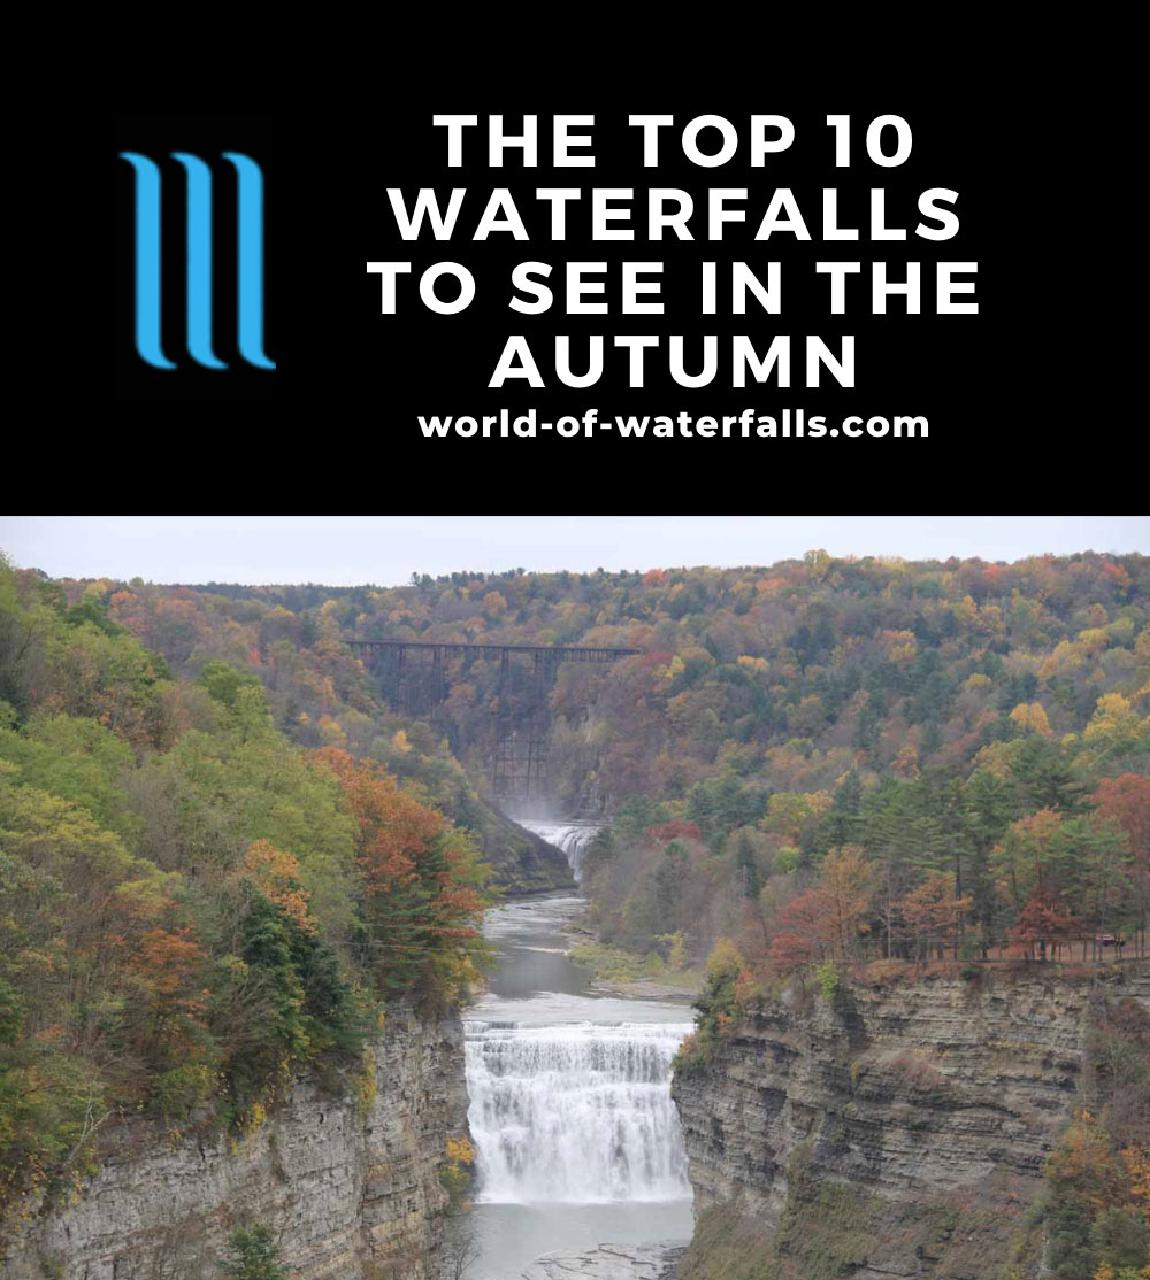 The Top 10 Waterfalls of see in the Autumn